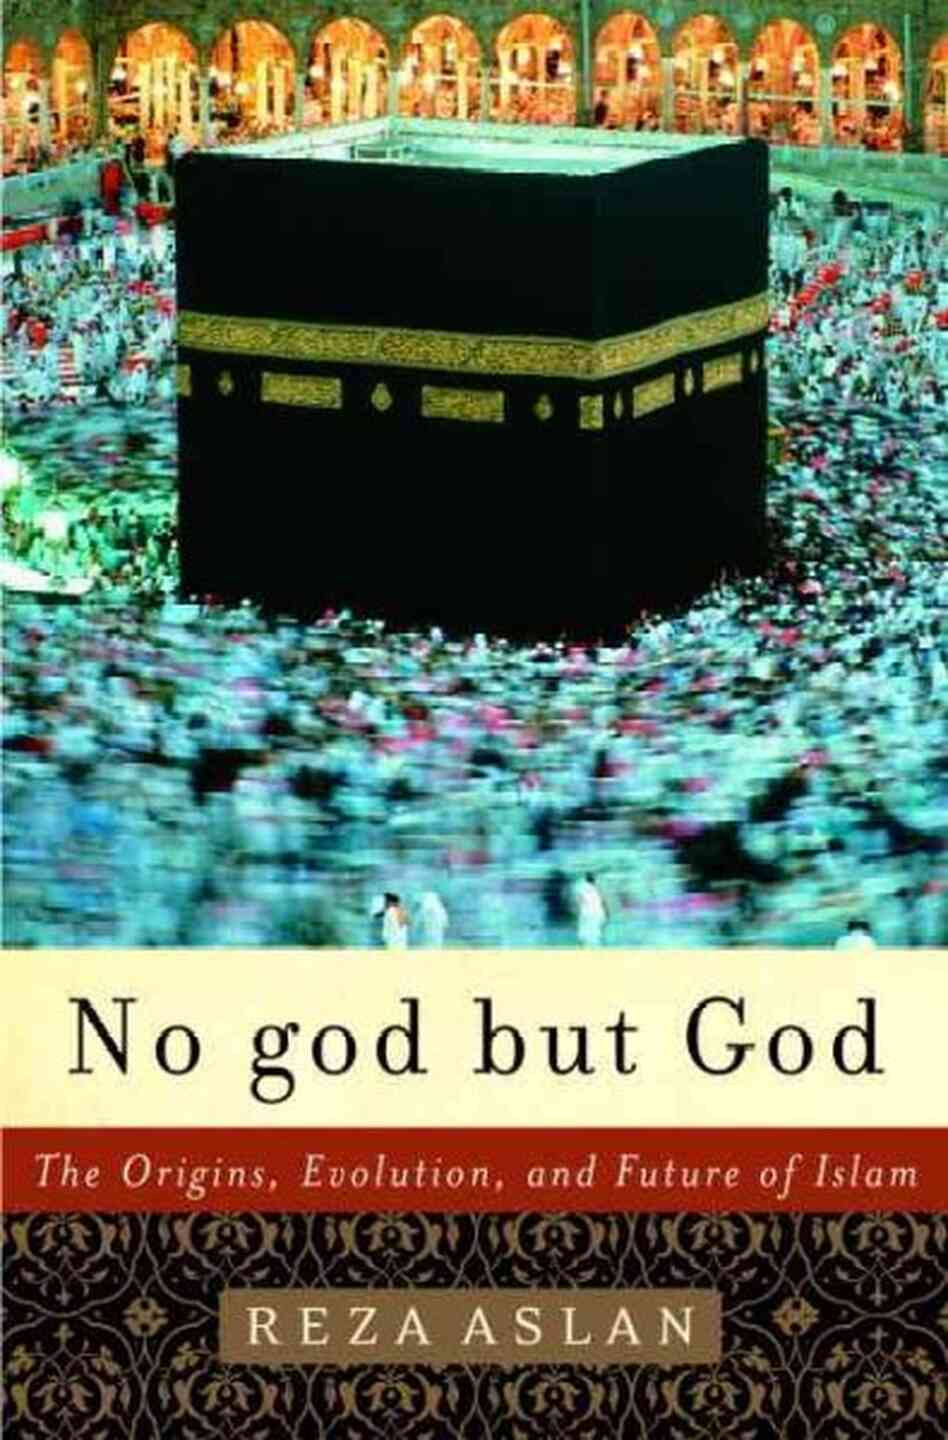 Reza aslan no god but god thesis